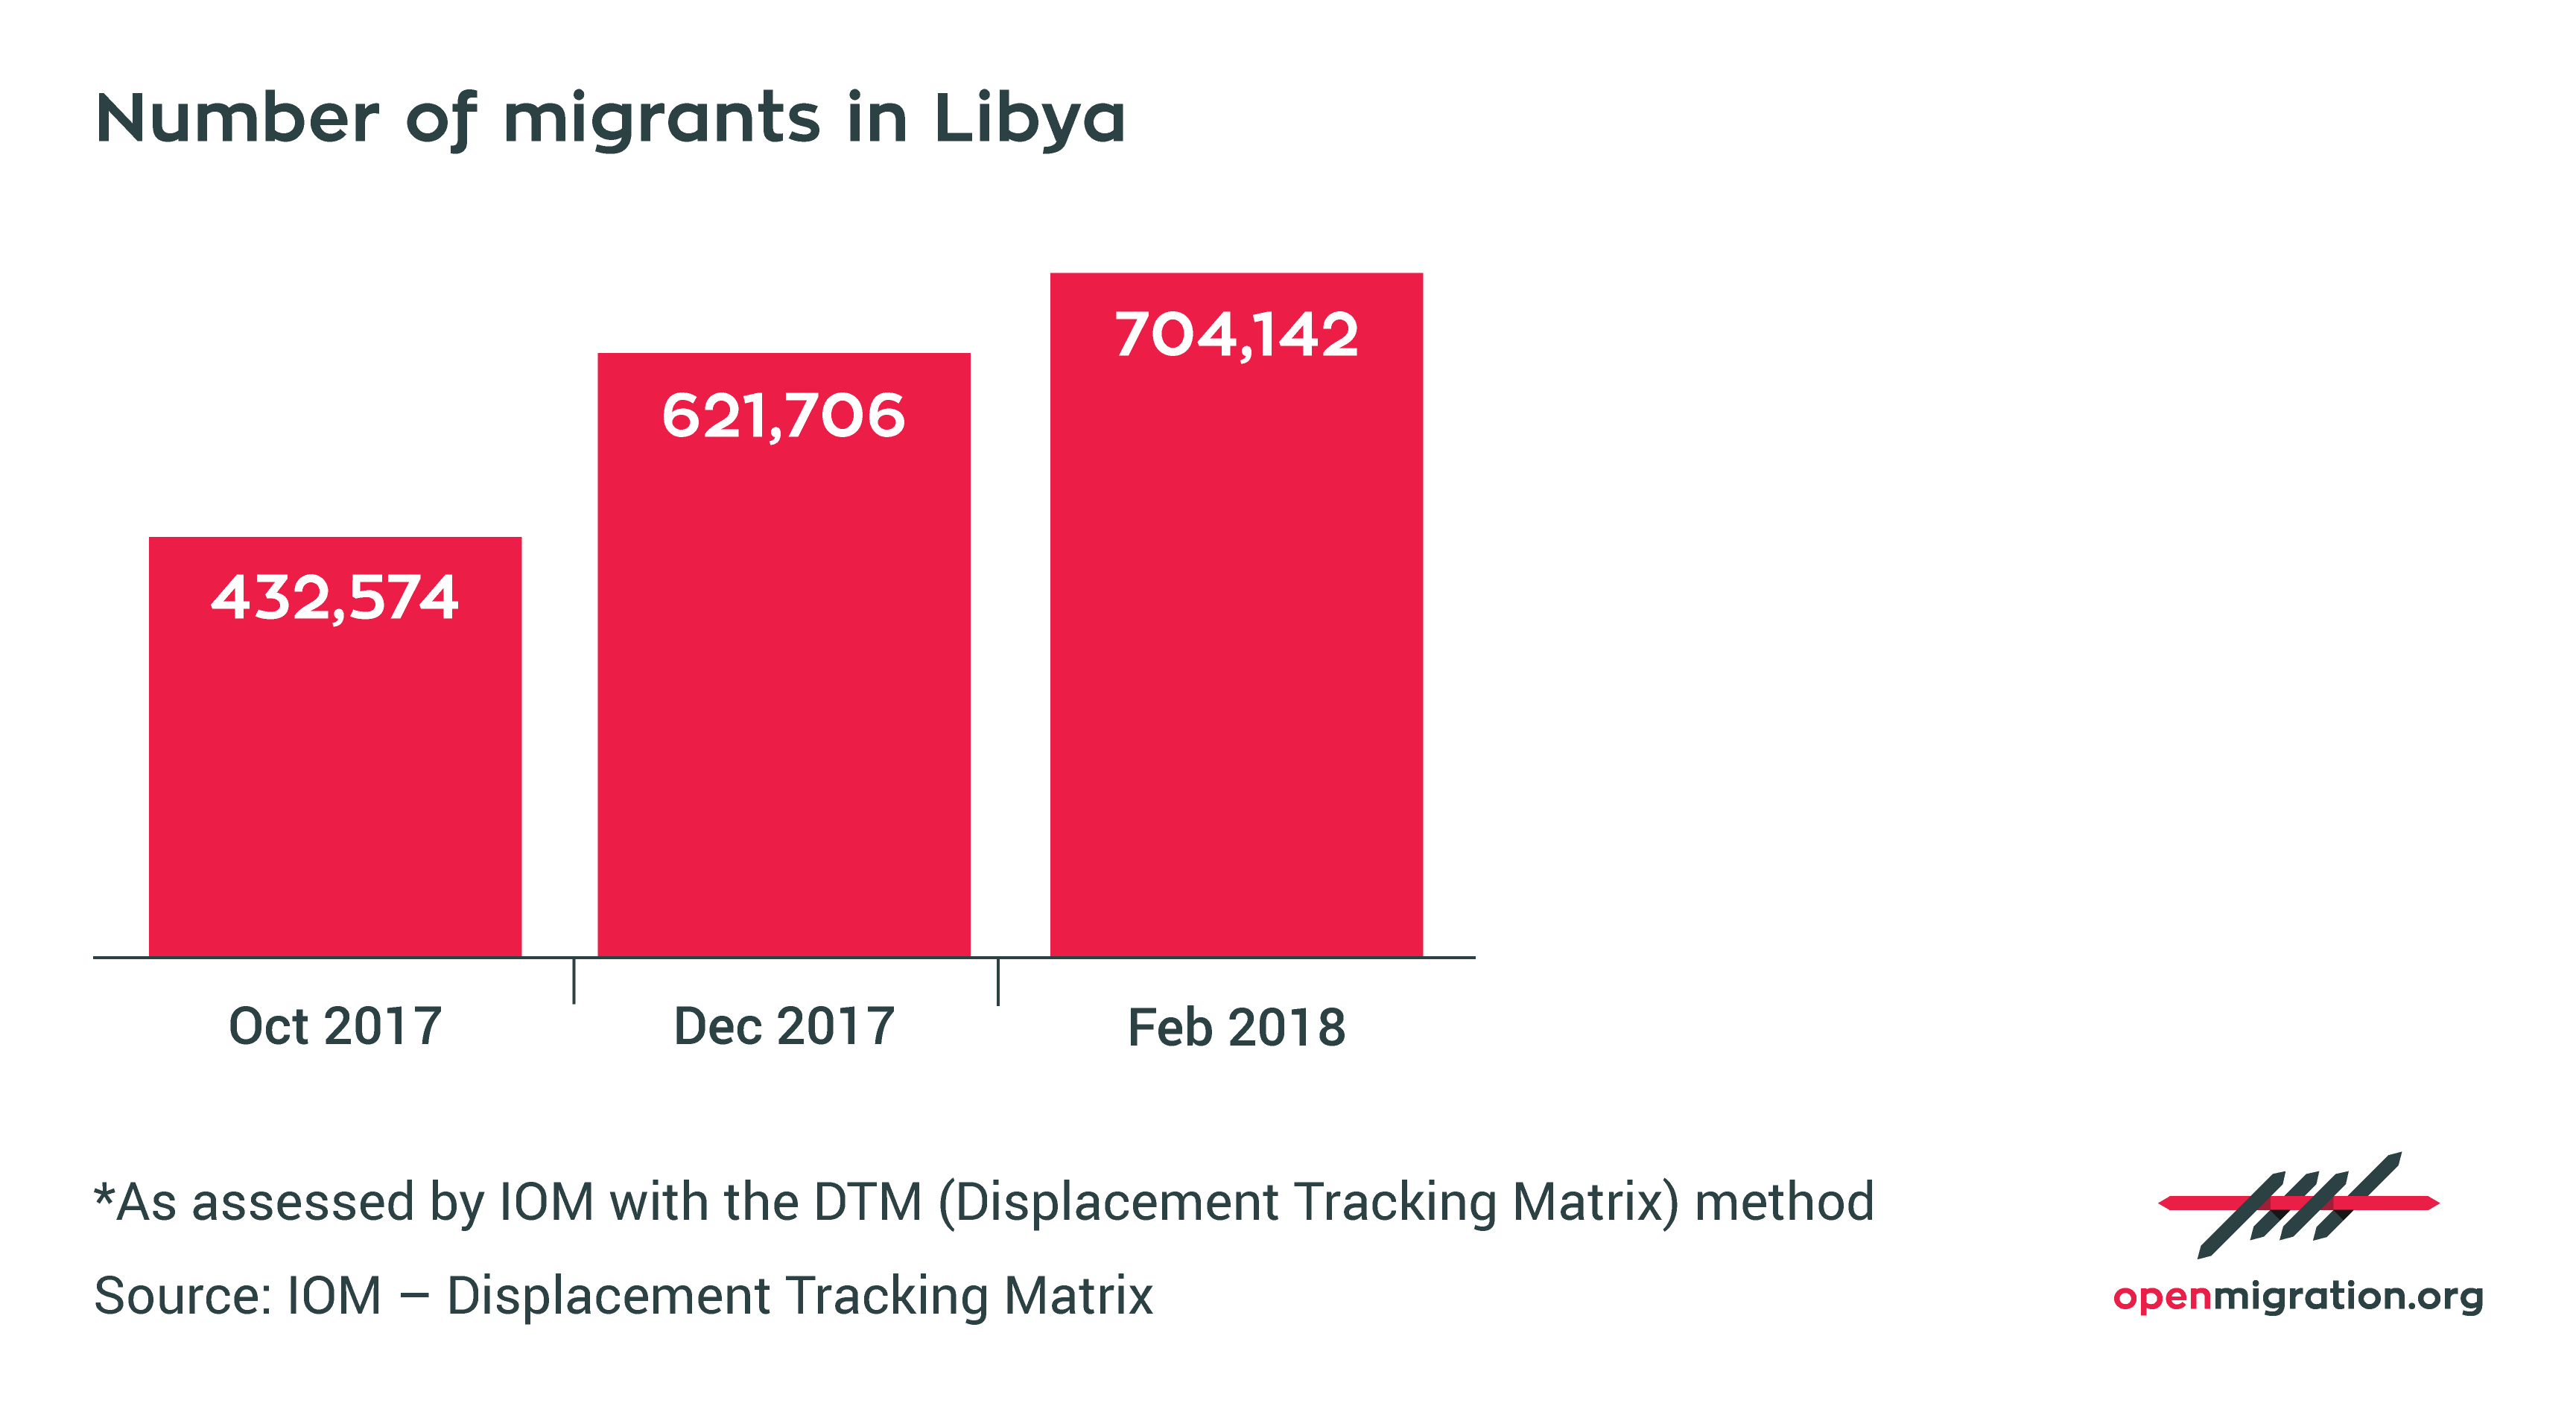 Number of migrants in Libya